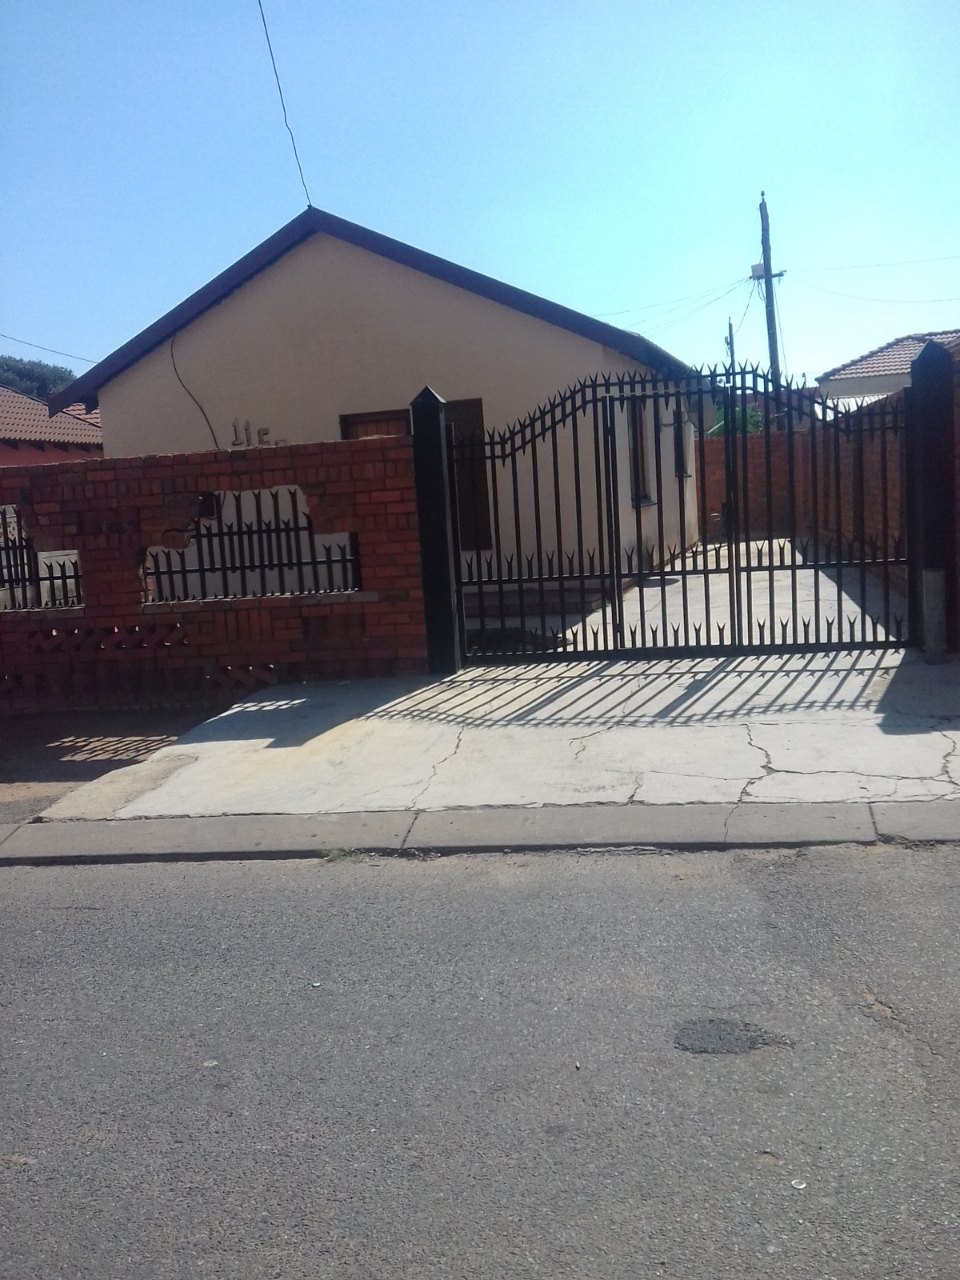 2 BEDROOMS FOR SALE LEBANON WINTERVELD R330 000.00 CALL SOPHY FOR MORE INFO @ 0760813571